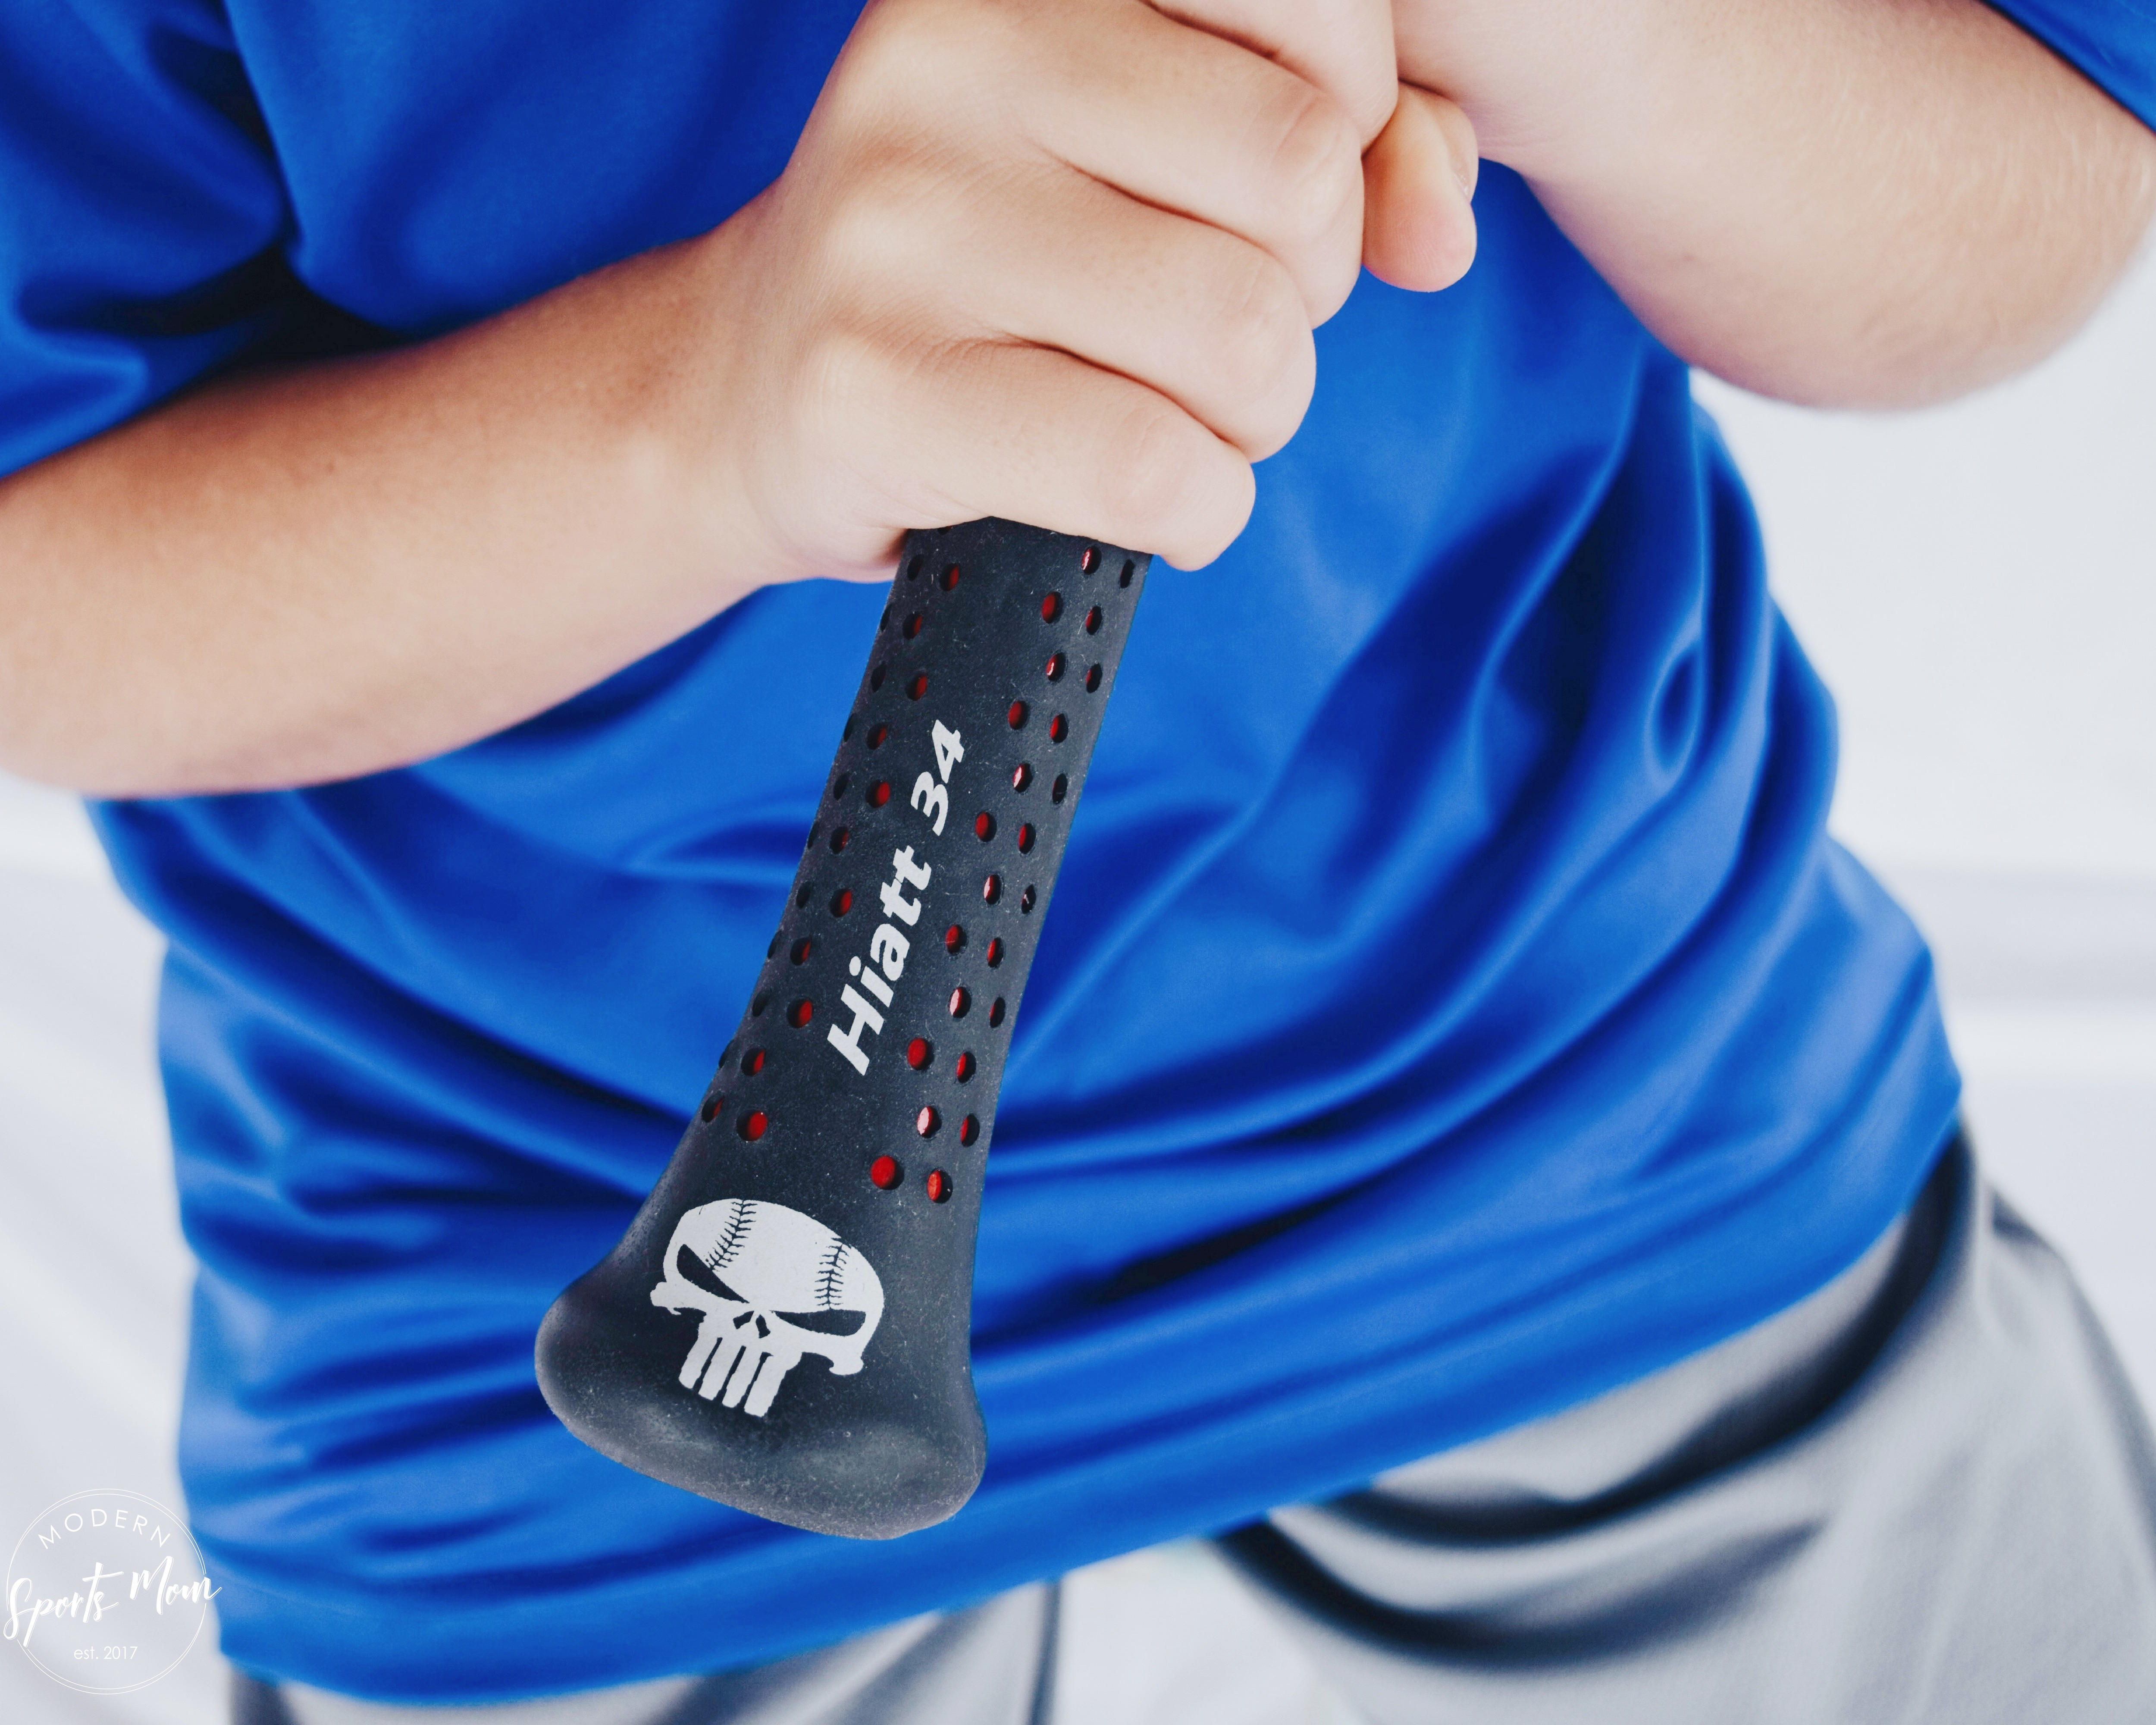 Personalized bat grip by Sniper Skin!